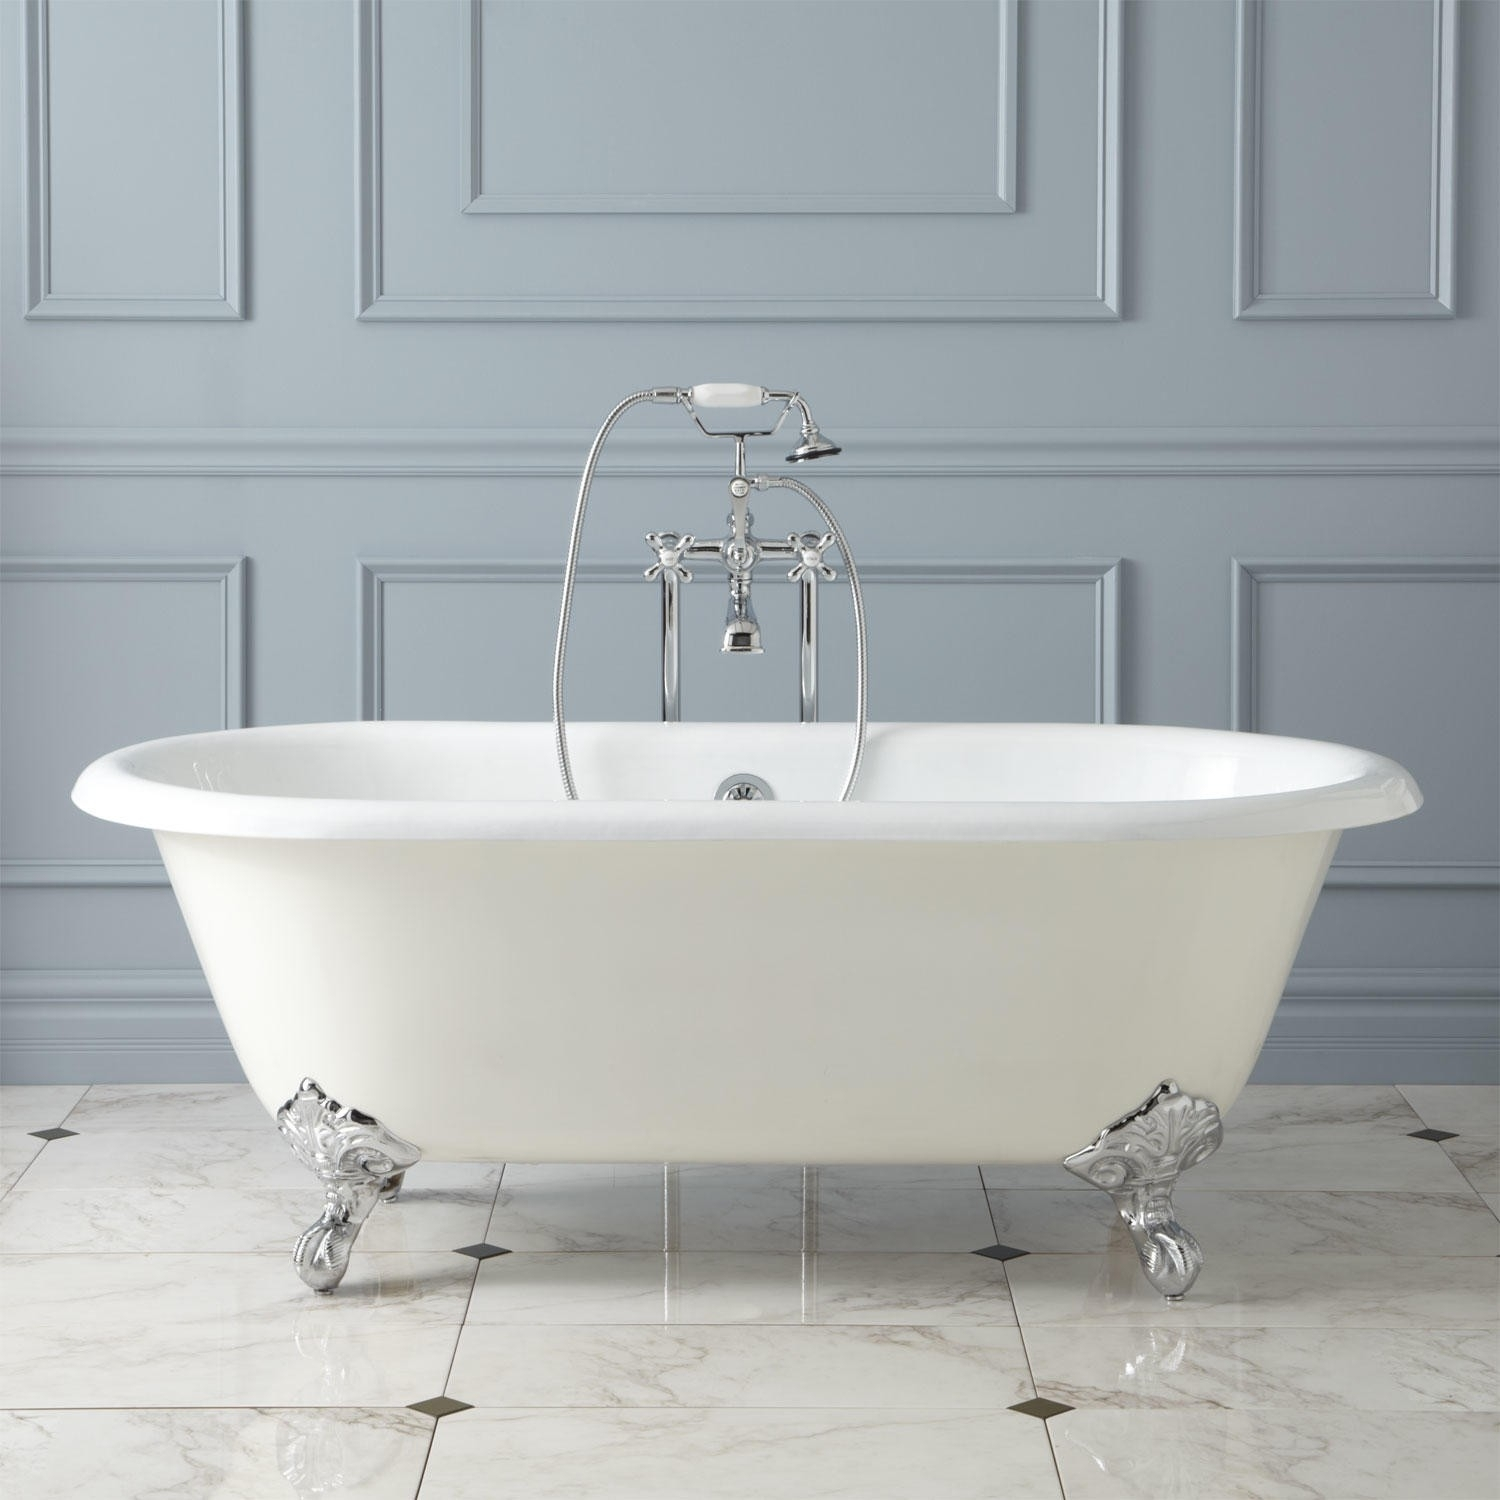 Bathtub Refinishing Cost, DIY Tips & Hiring Contractor ...